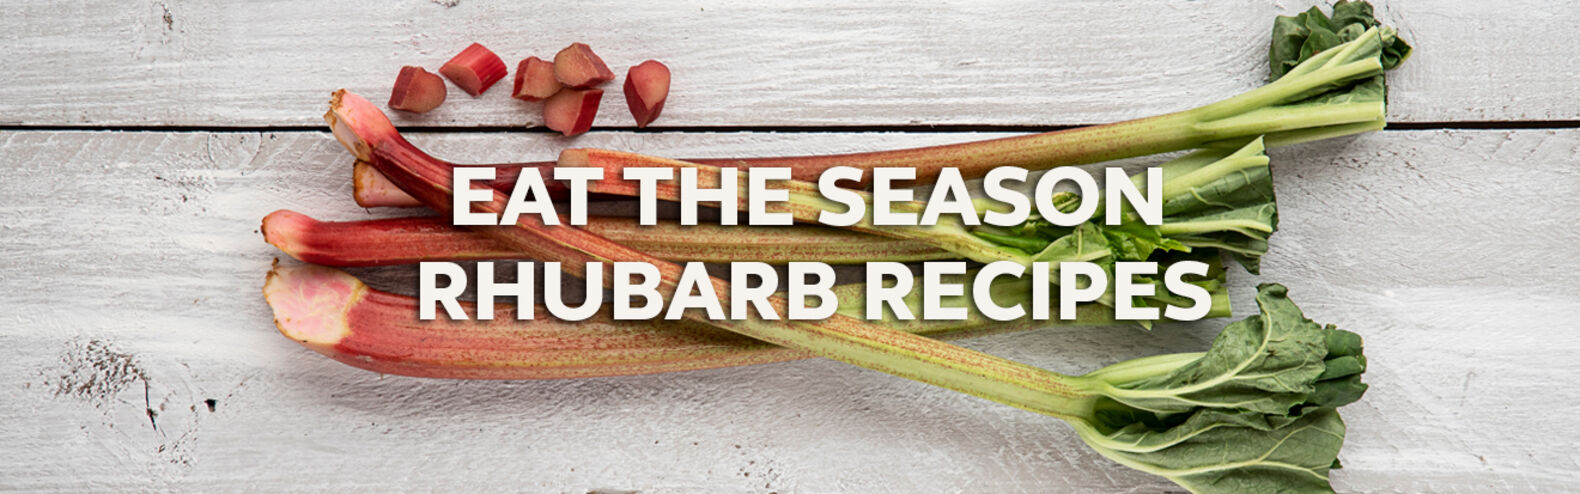 SuperValu Fruit and Veg Eat the Season Rhubarb